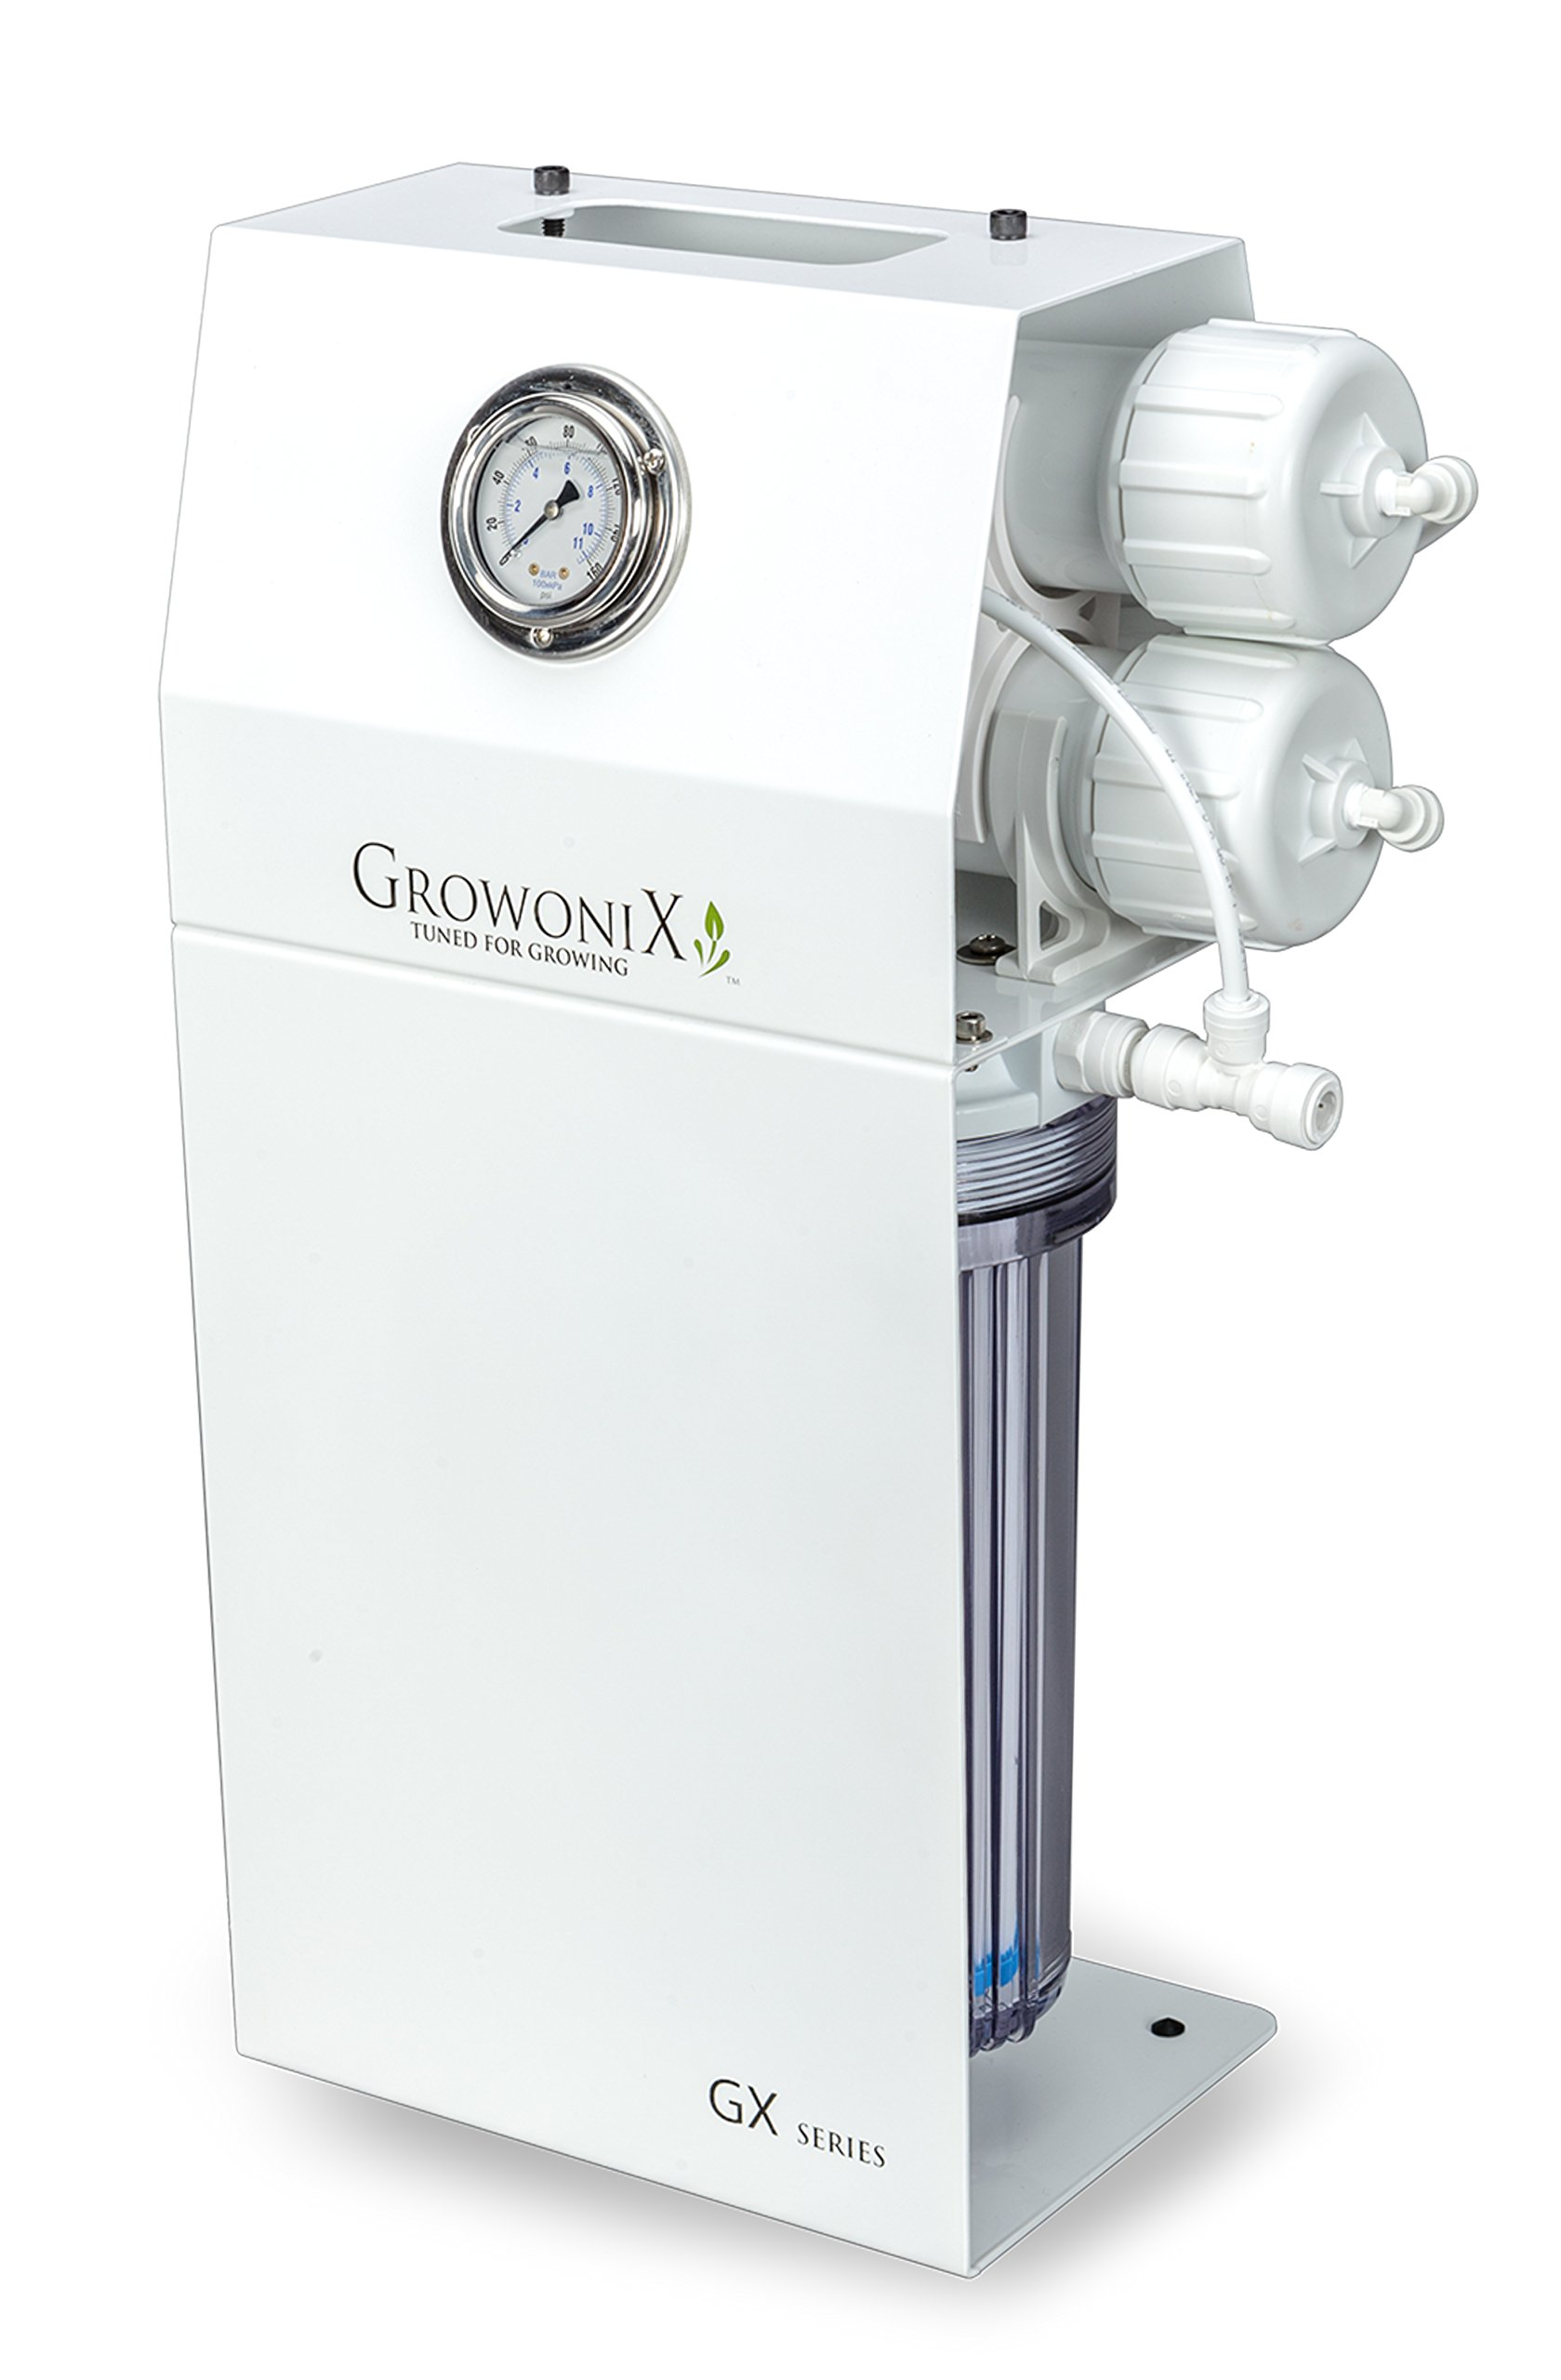 GROWONIX GX400 Reverse Osmosis System Ultra High Flow Rate Water Purification Filter for Hydroponics Gardening Growing Drinking H20 Coffee Point of use On Demand Purifier Most Efficient Eco Water by Growonix